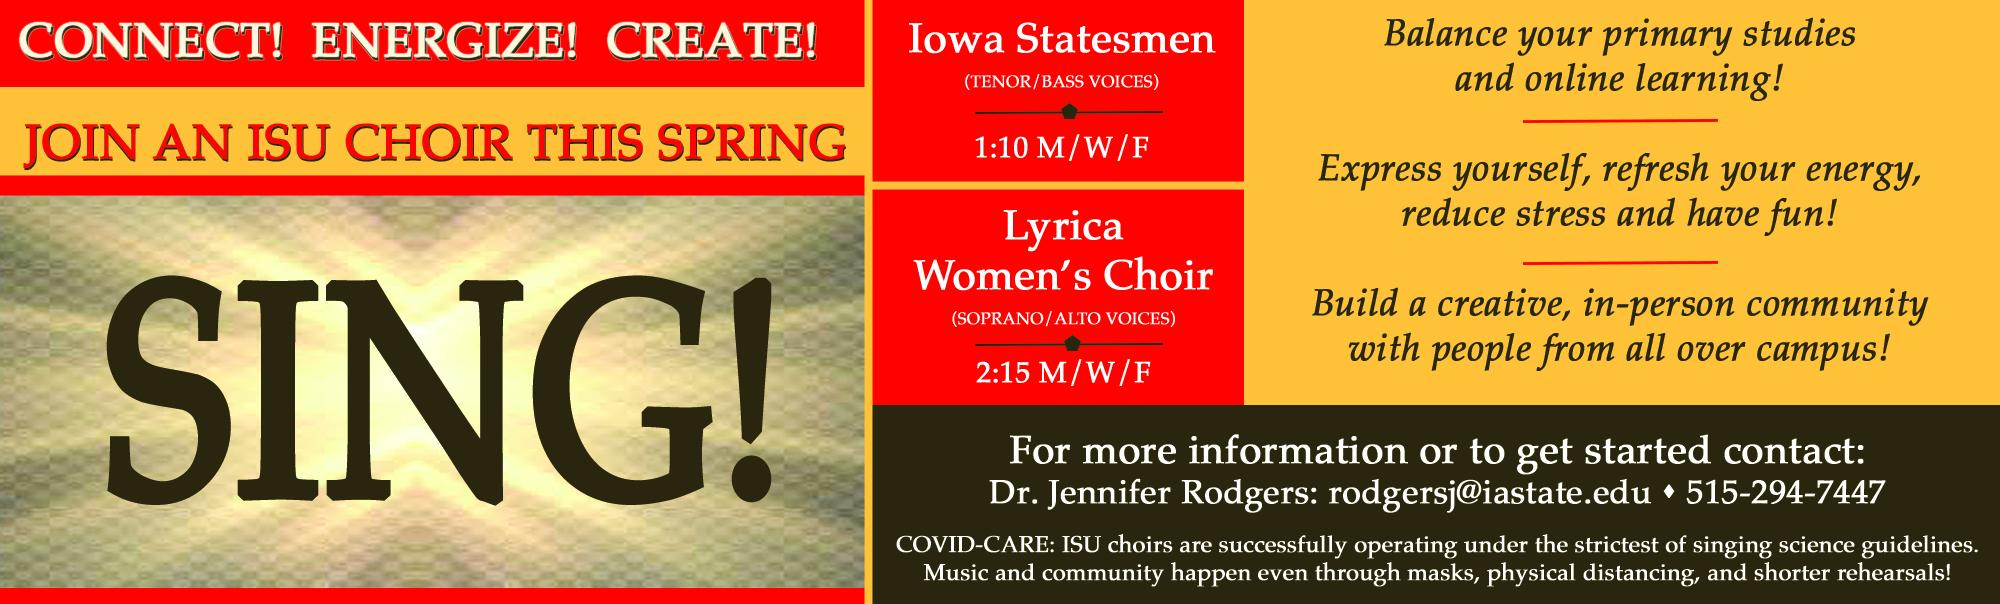 Join an ISU Choir